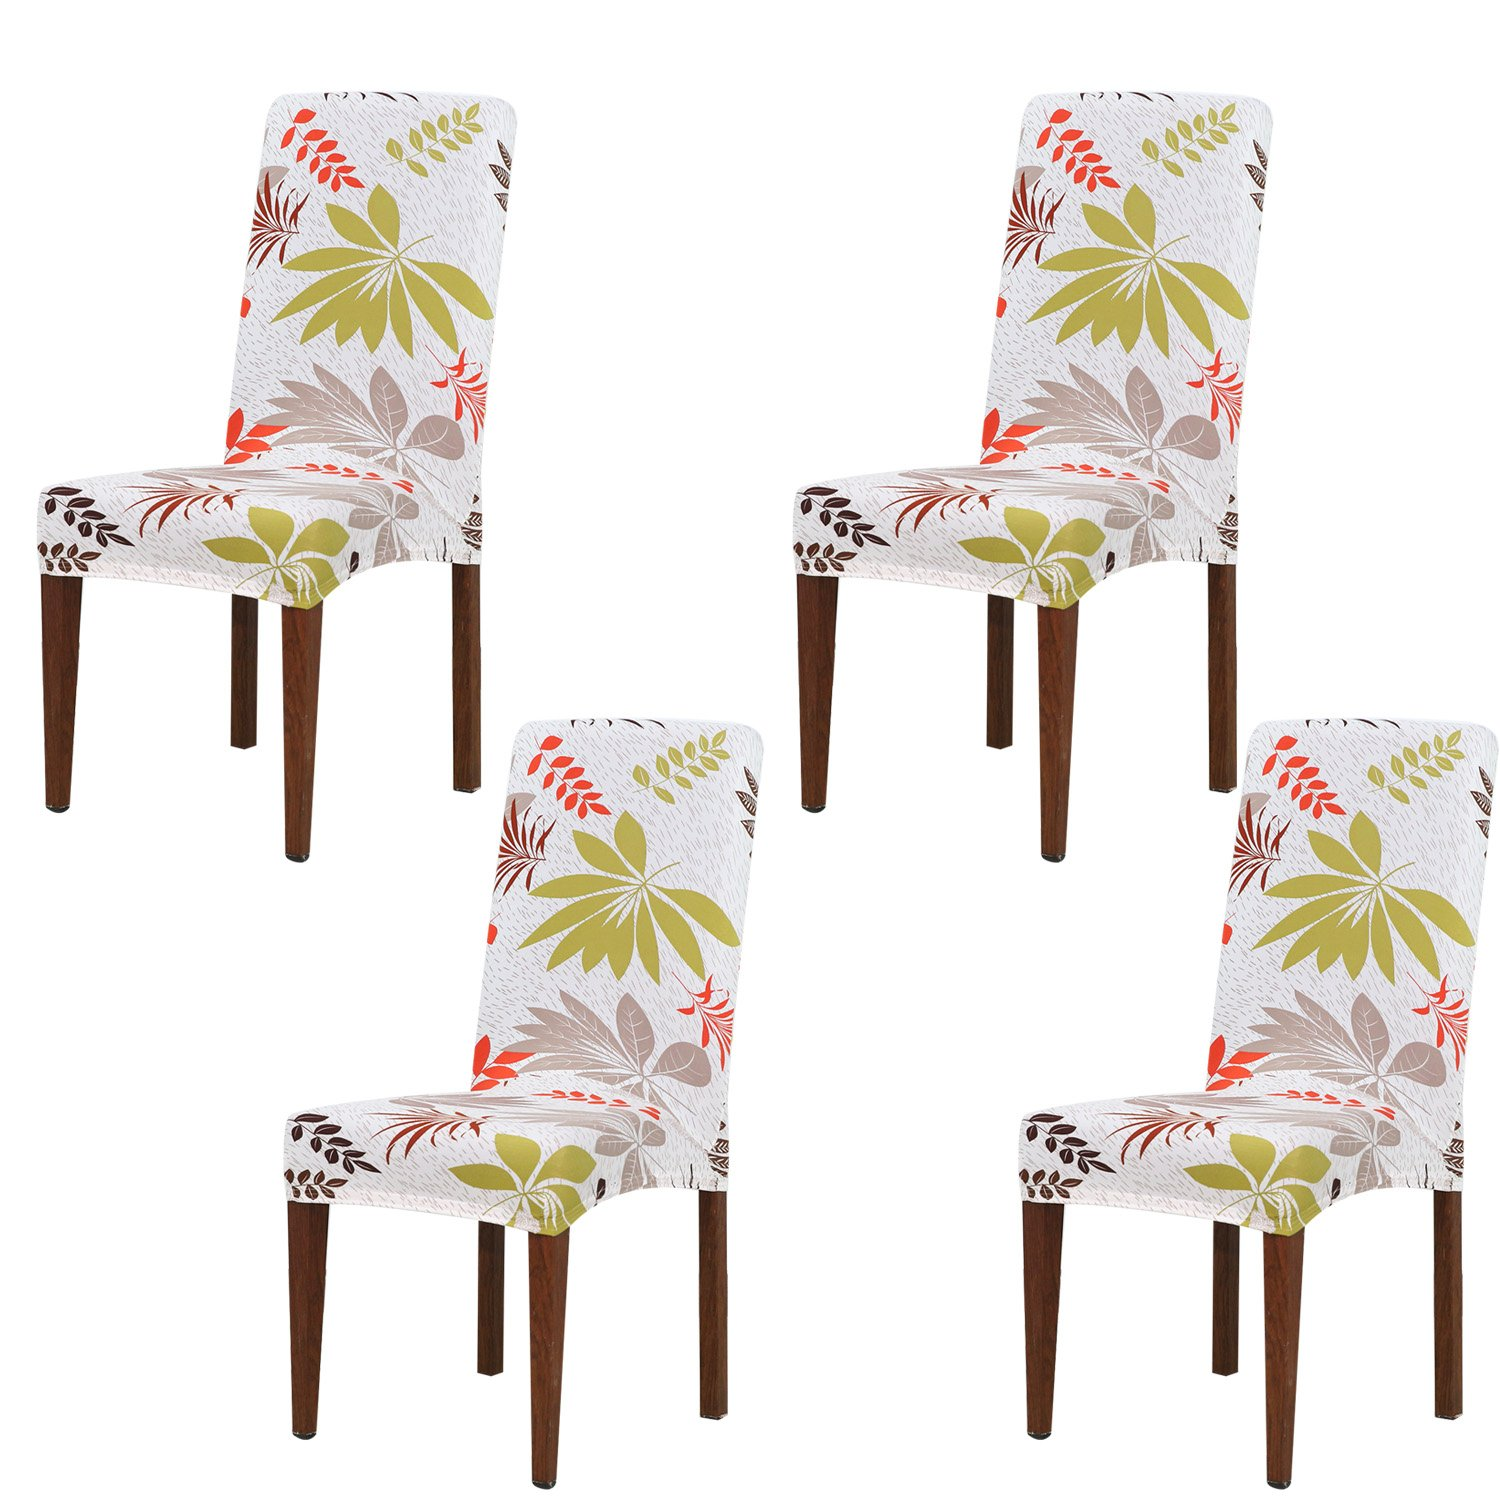 Dining Chair Slipcovers Universal Stretch Seat Cover Protector Removable Fabric Coverings Washable Spandex Chaircase for Hotel, Banquet, Wedding, Party, Restaurant, Home Dinner Décor, Set of 4 PCS (B) Yesurprise